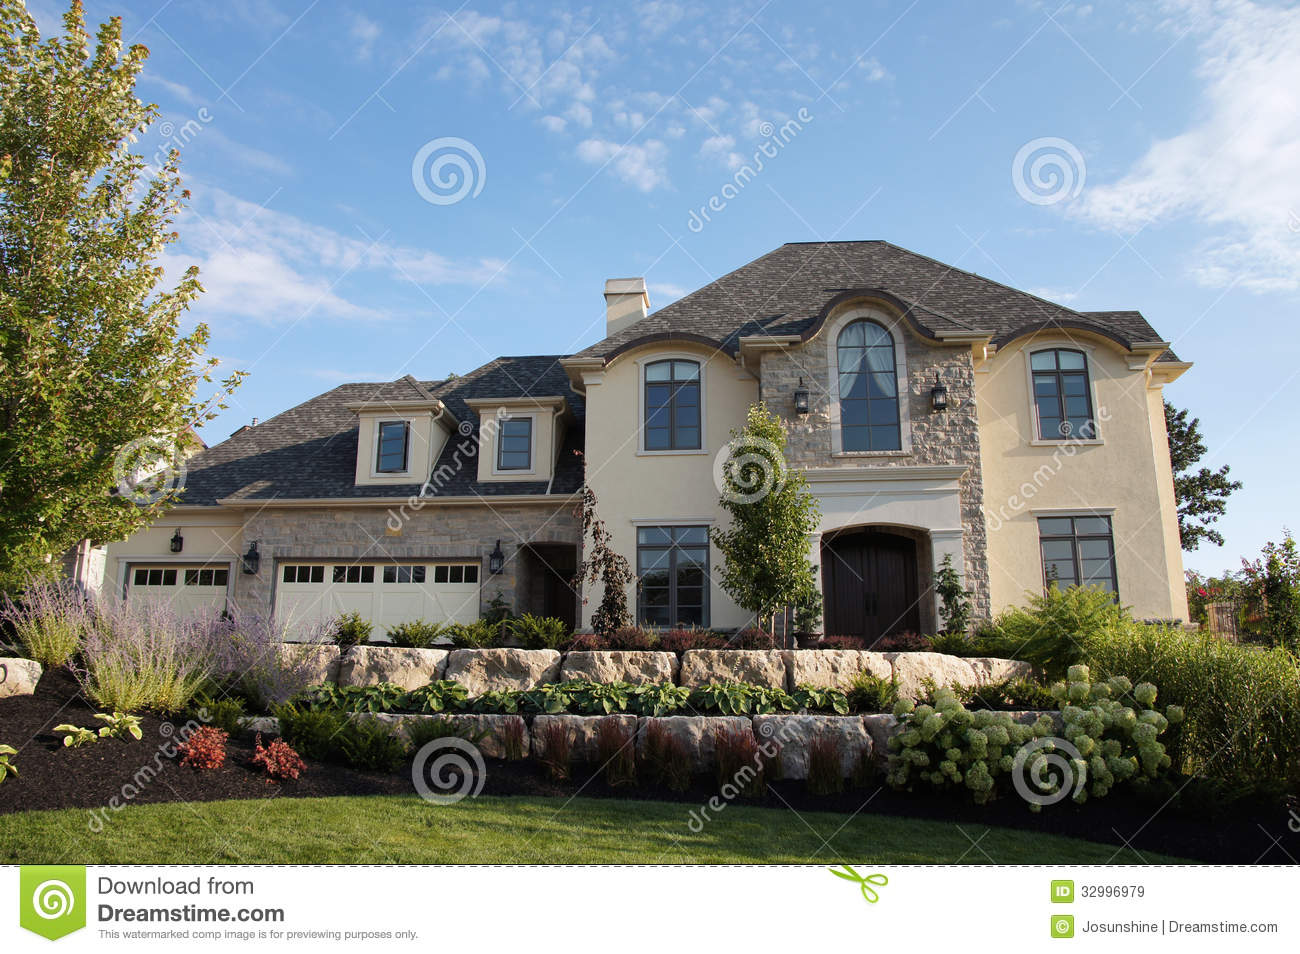 Design Stucco And Stone Homes luxury stucco house stone royalty free stock images image 32996979 photo download stone